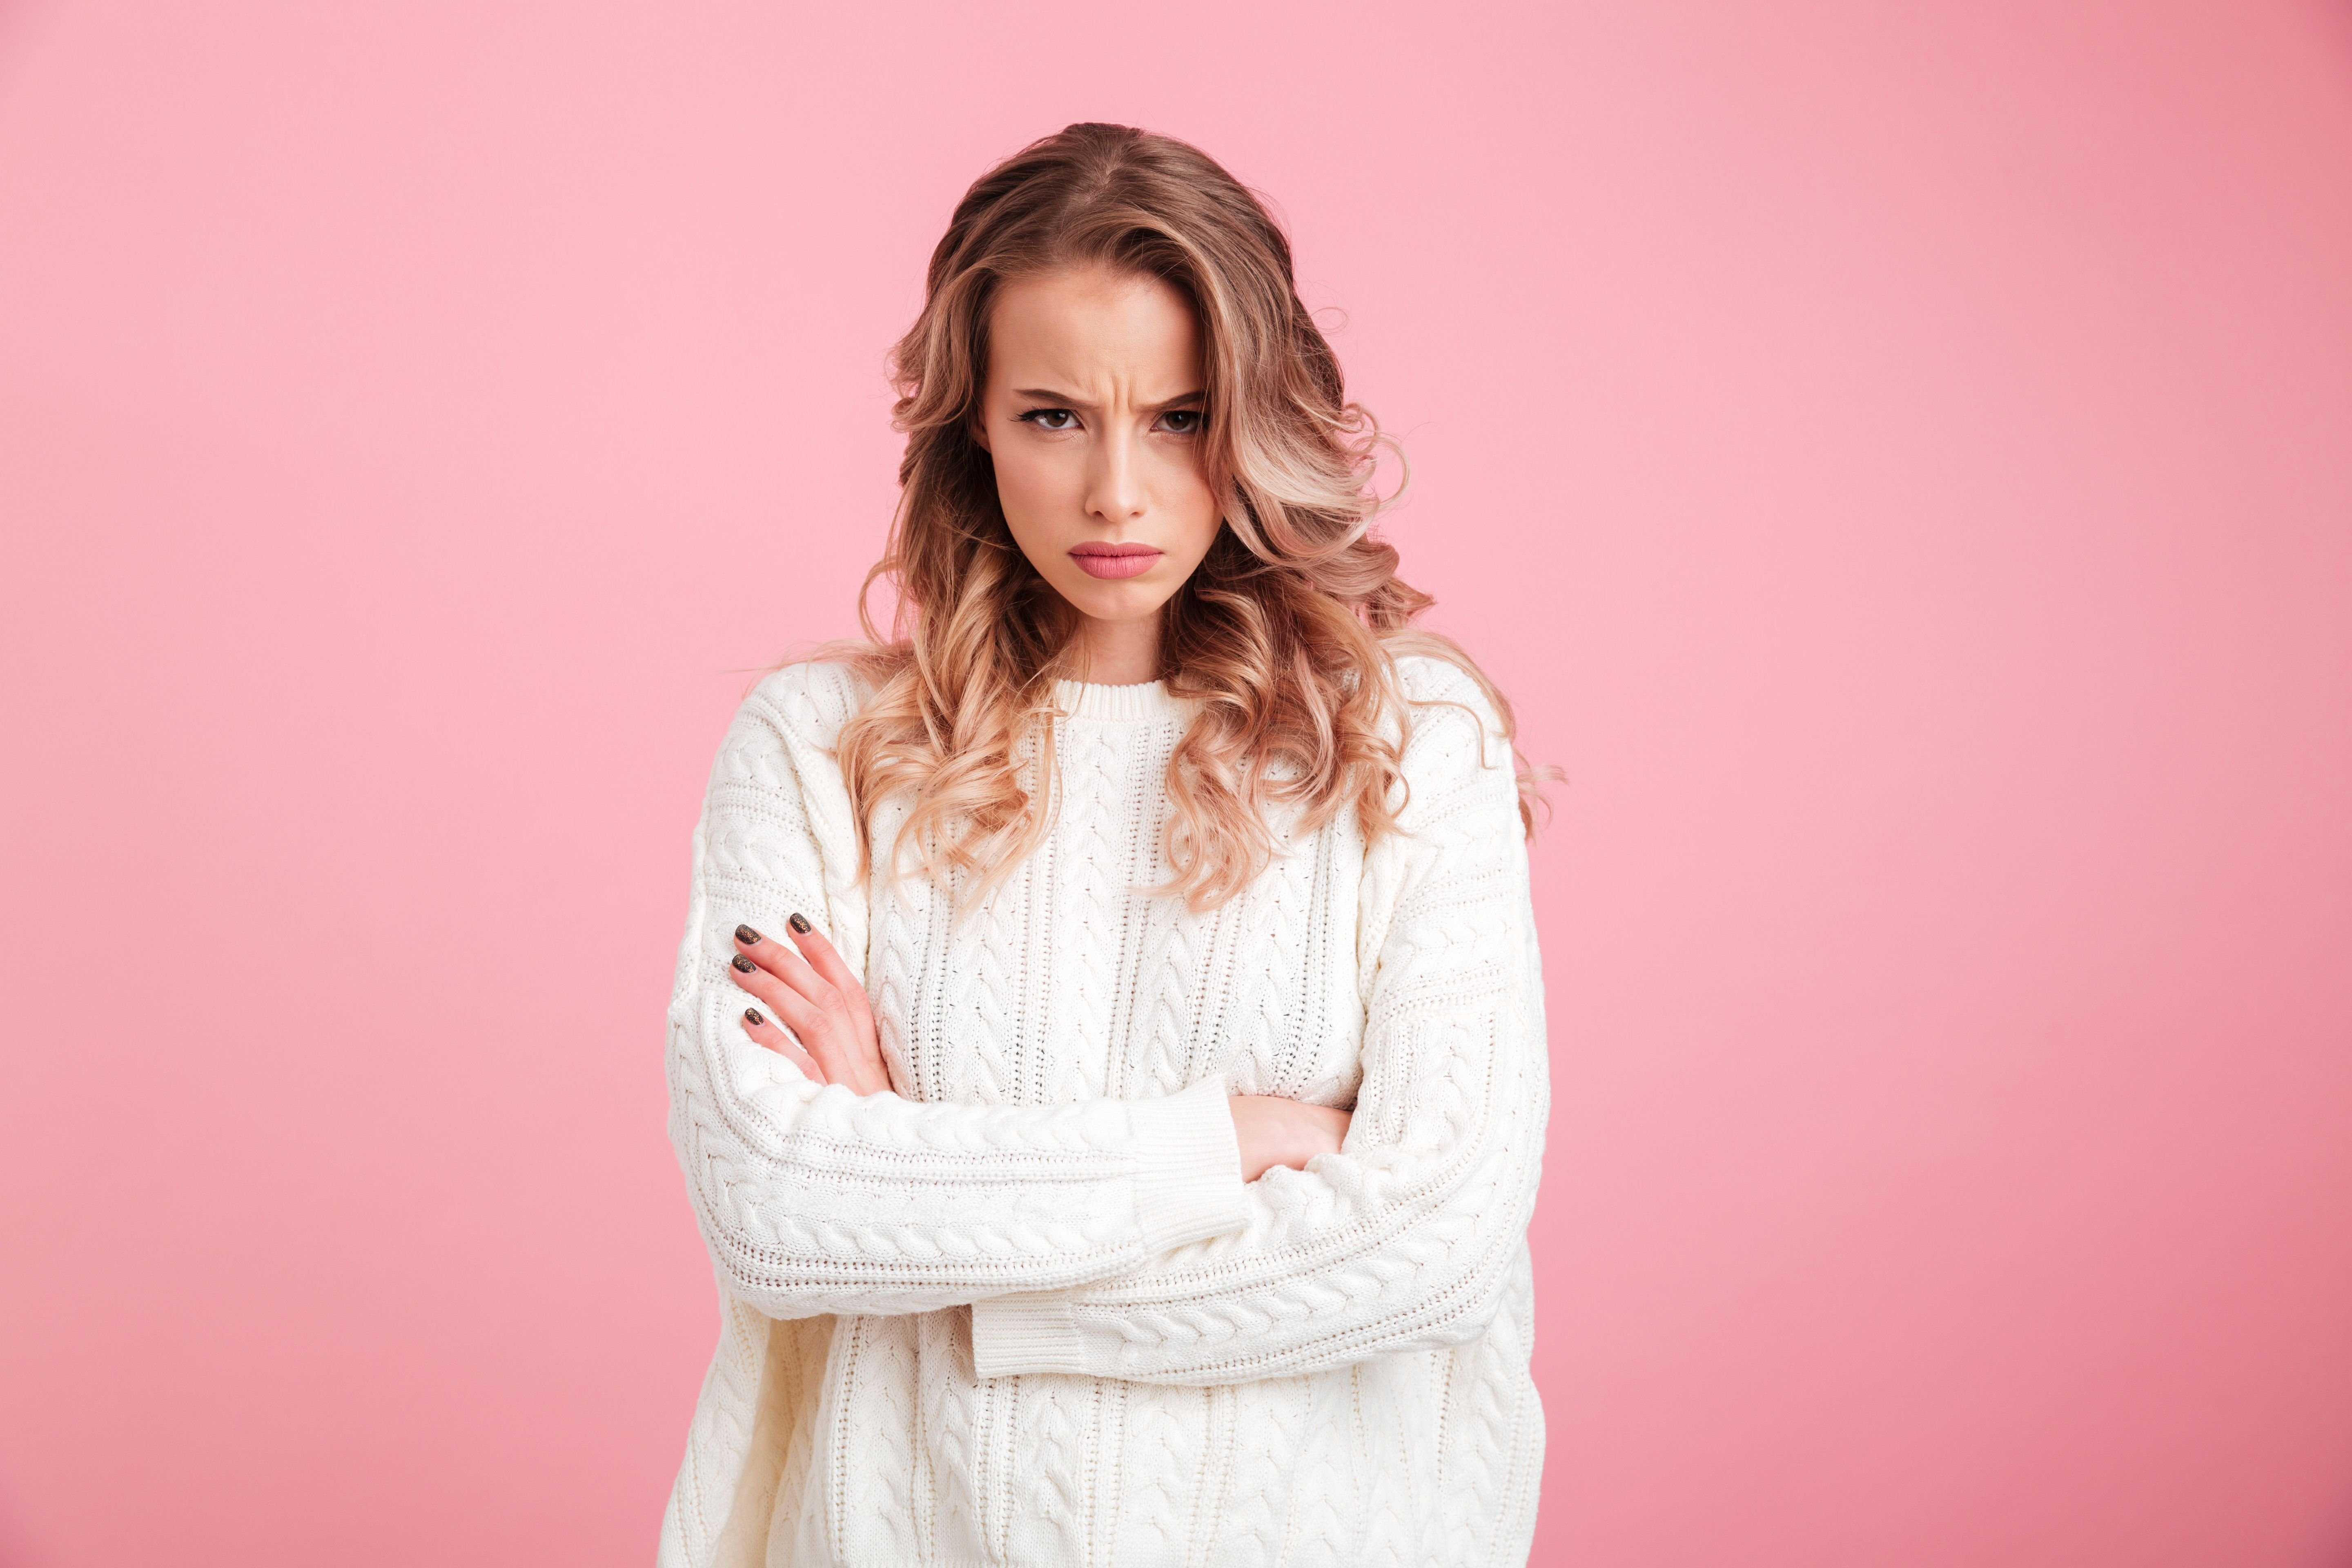 Blonde woman wearing a white jersey in front of a pink background crossing her arms and staring angrily into the camera.   Photo: Shutterstock